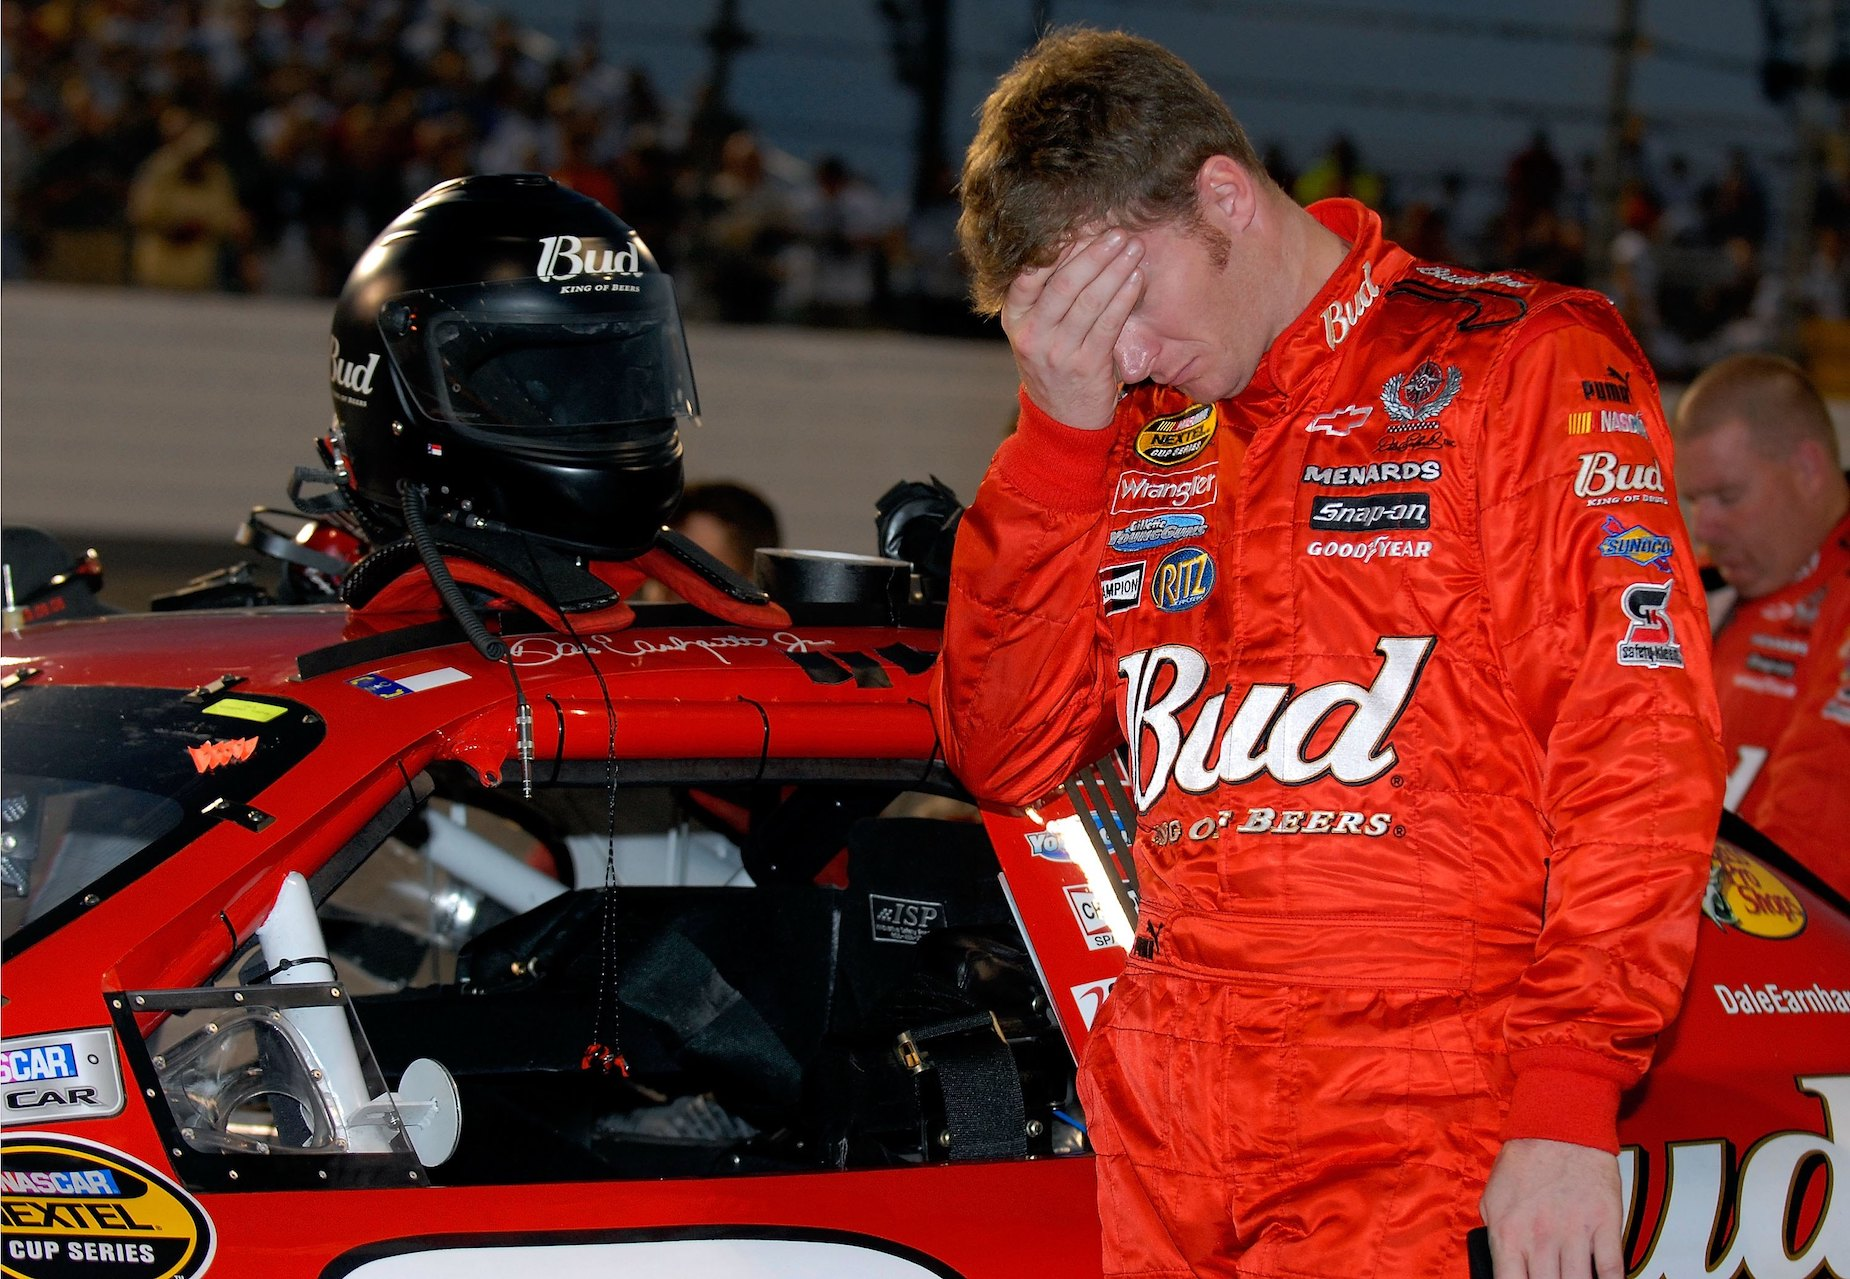 Dale Earnhardt Jr. admitted that, during his early career, he let partying get in the way of racing. |